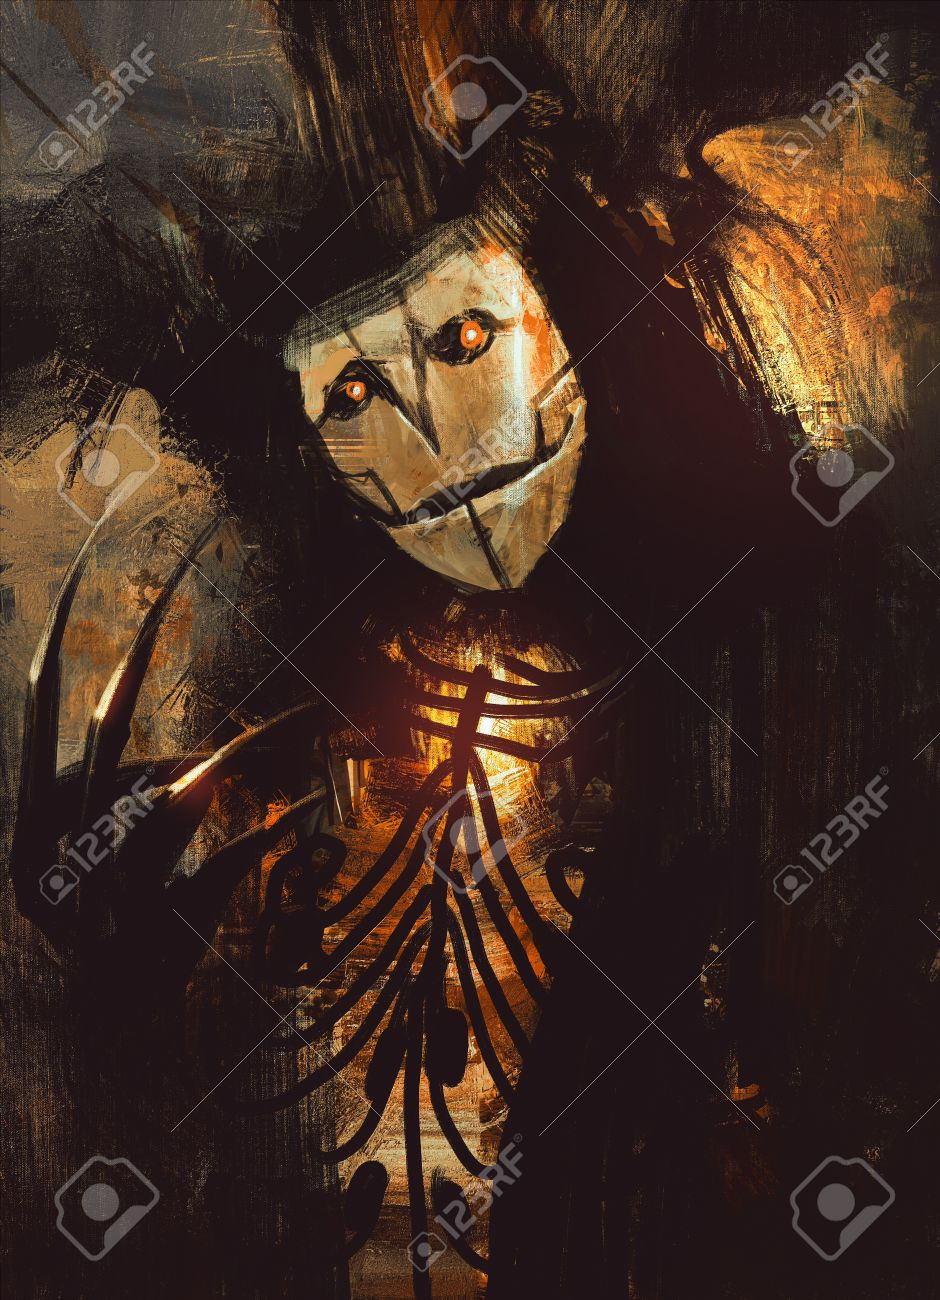 portrait of a dark fantasy character.digital painting Stock Photo - 42293105